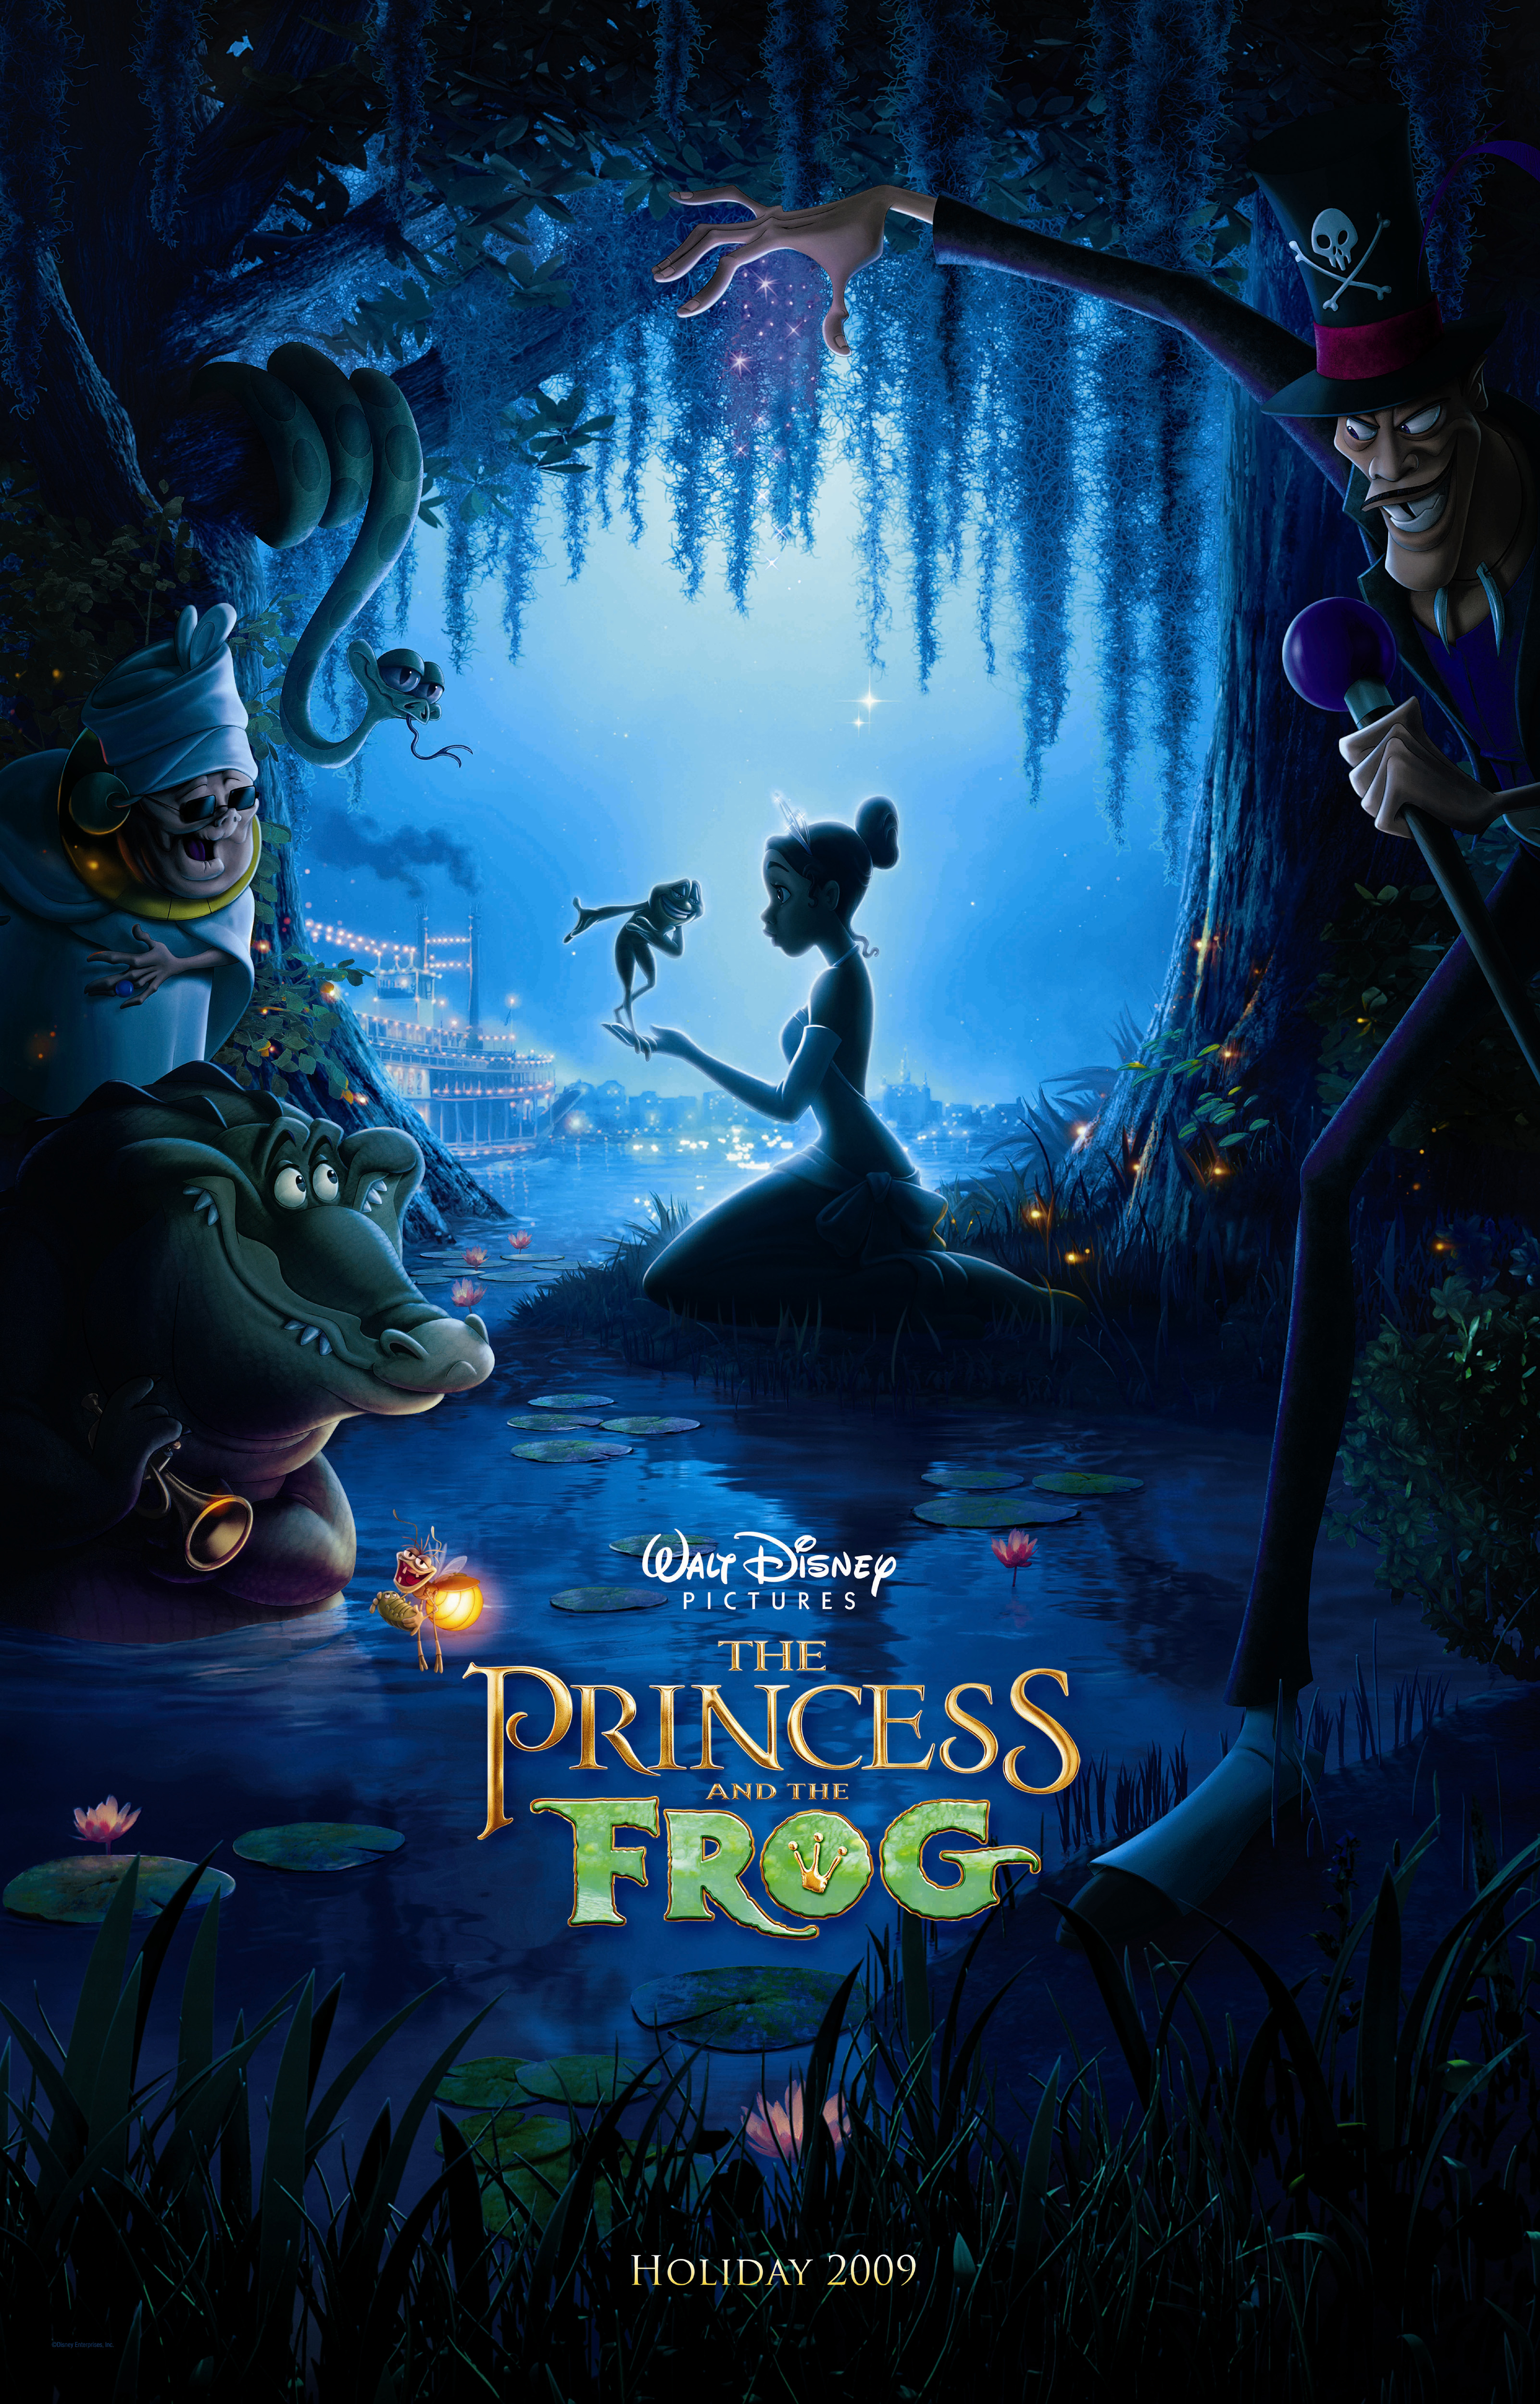 http://img1.wikia.nocookie.net/__cb20120915095456/disney/images/f/fa/Frog_official_poster_500.jpg